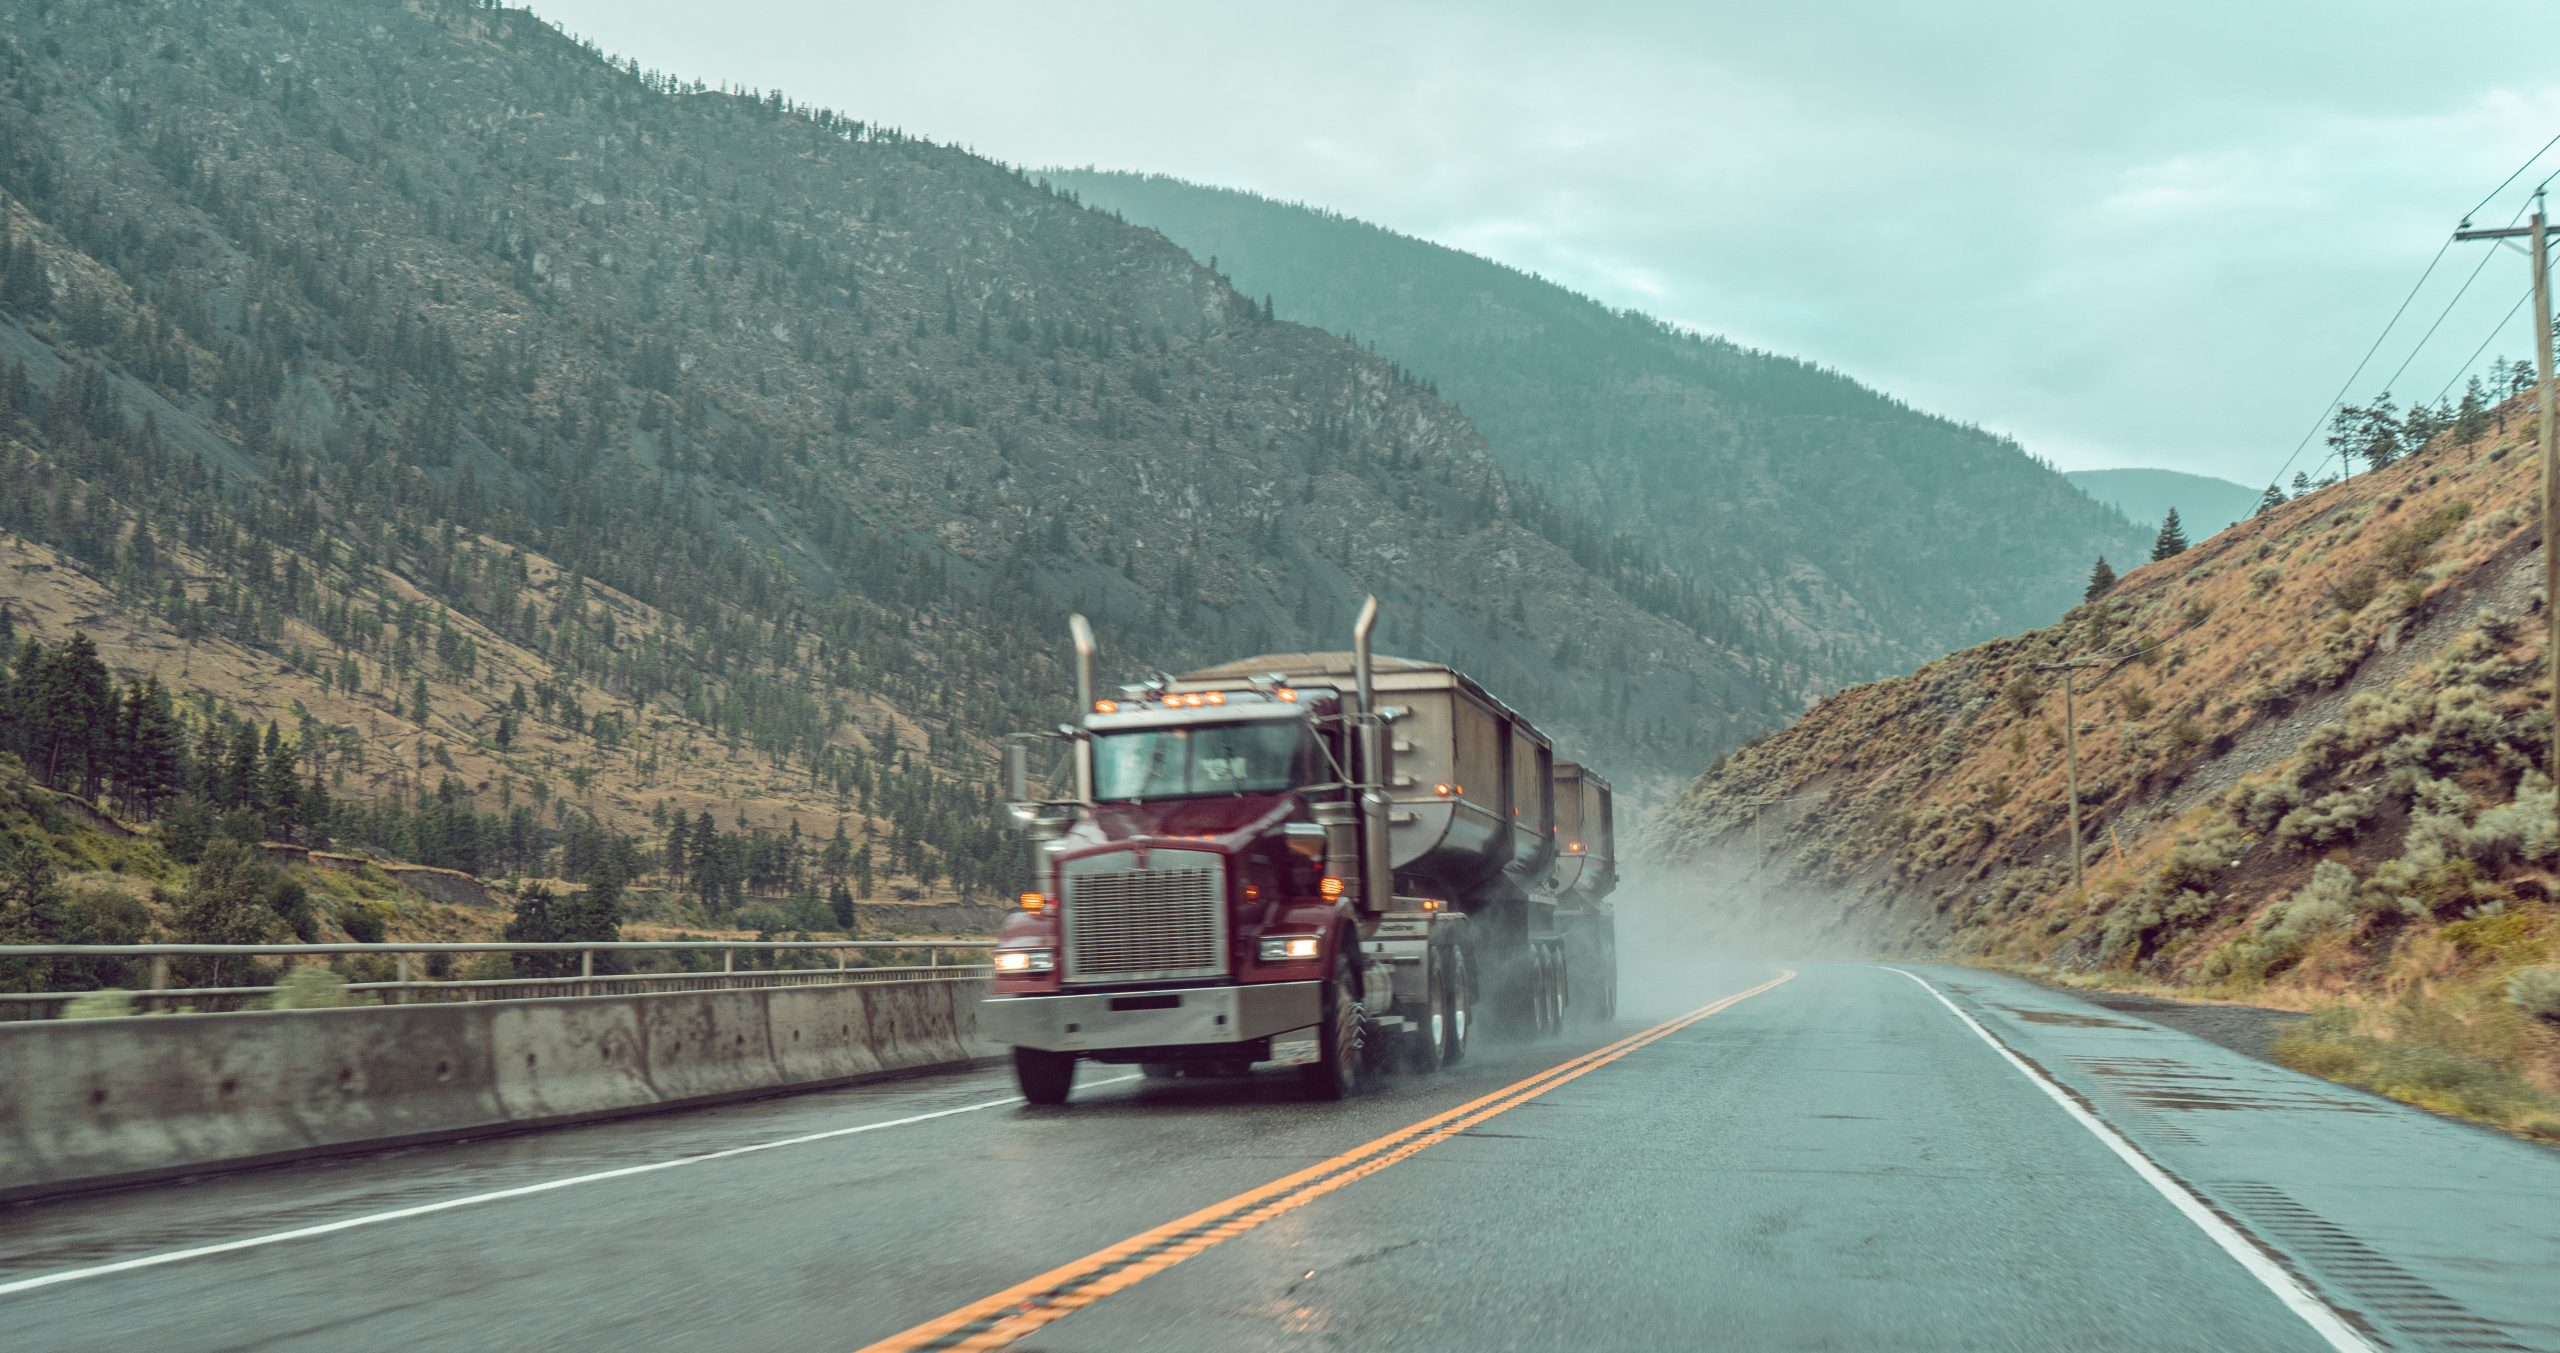 Read more about the article Side-mounted fuel tanks on semi trucks can be deadly